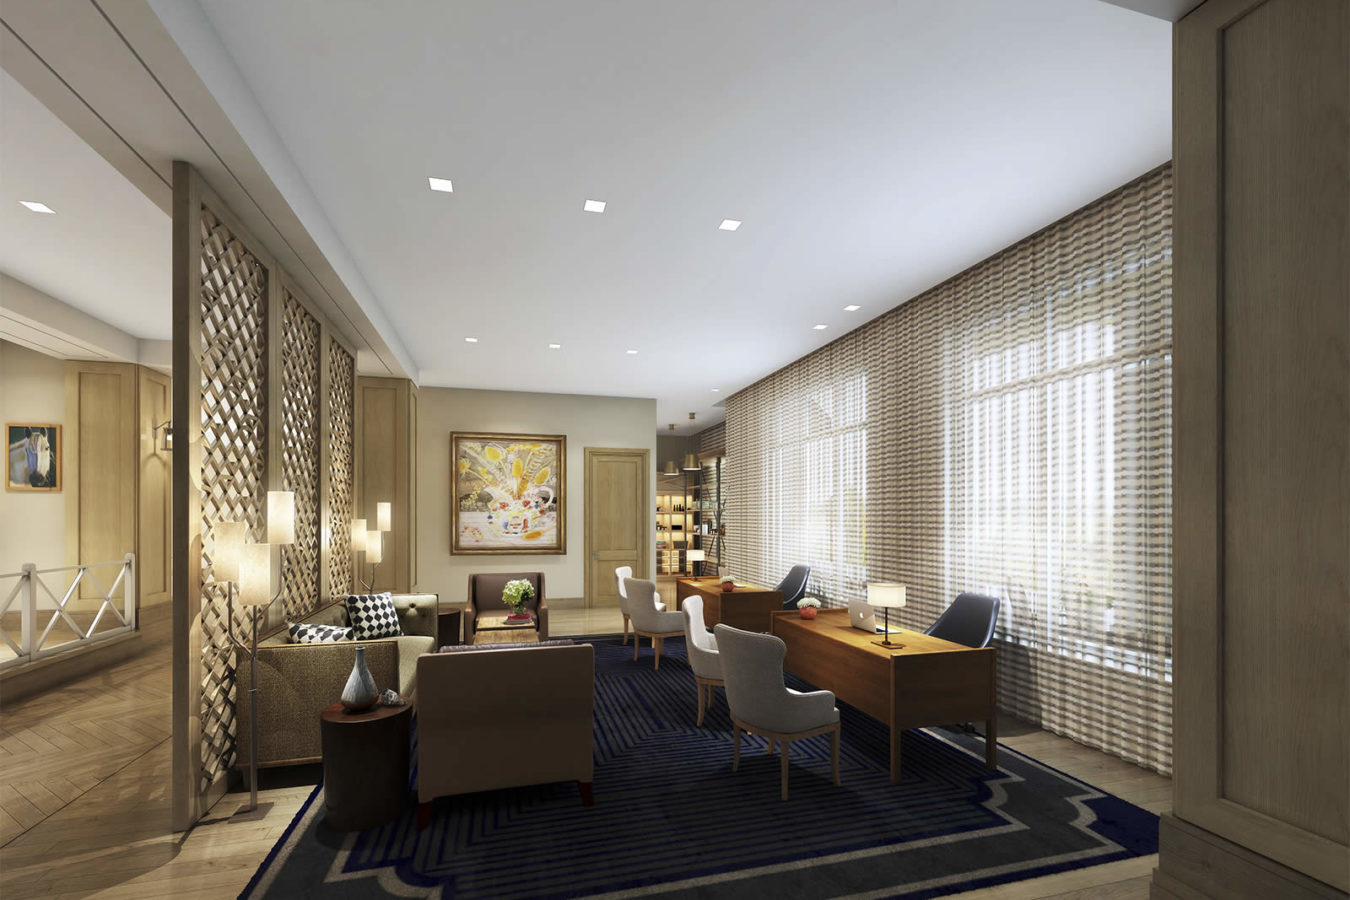 Rendering of the reception area at the Harpeth Hotel